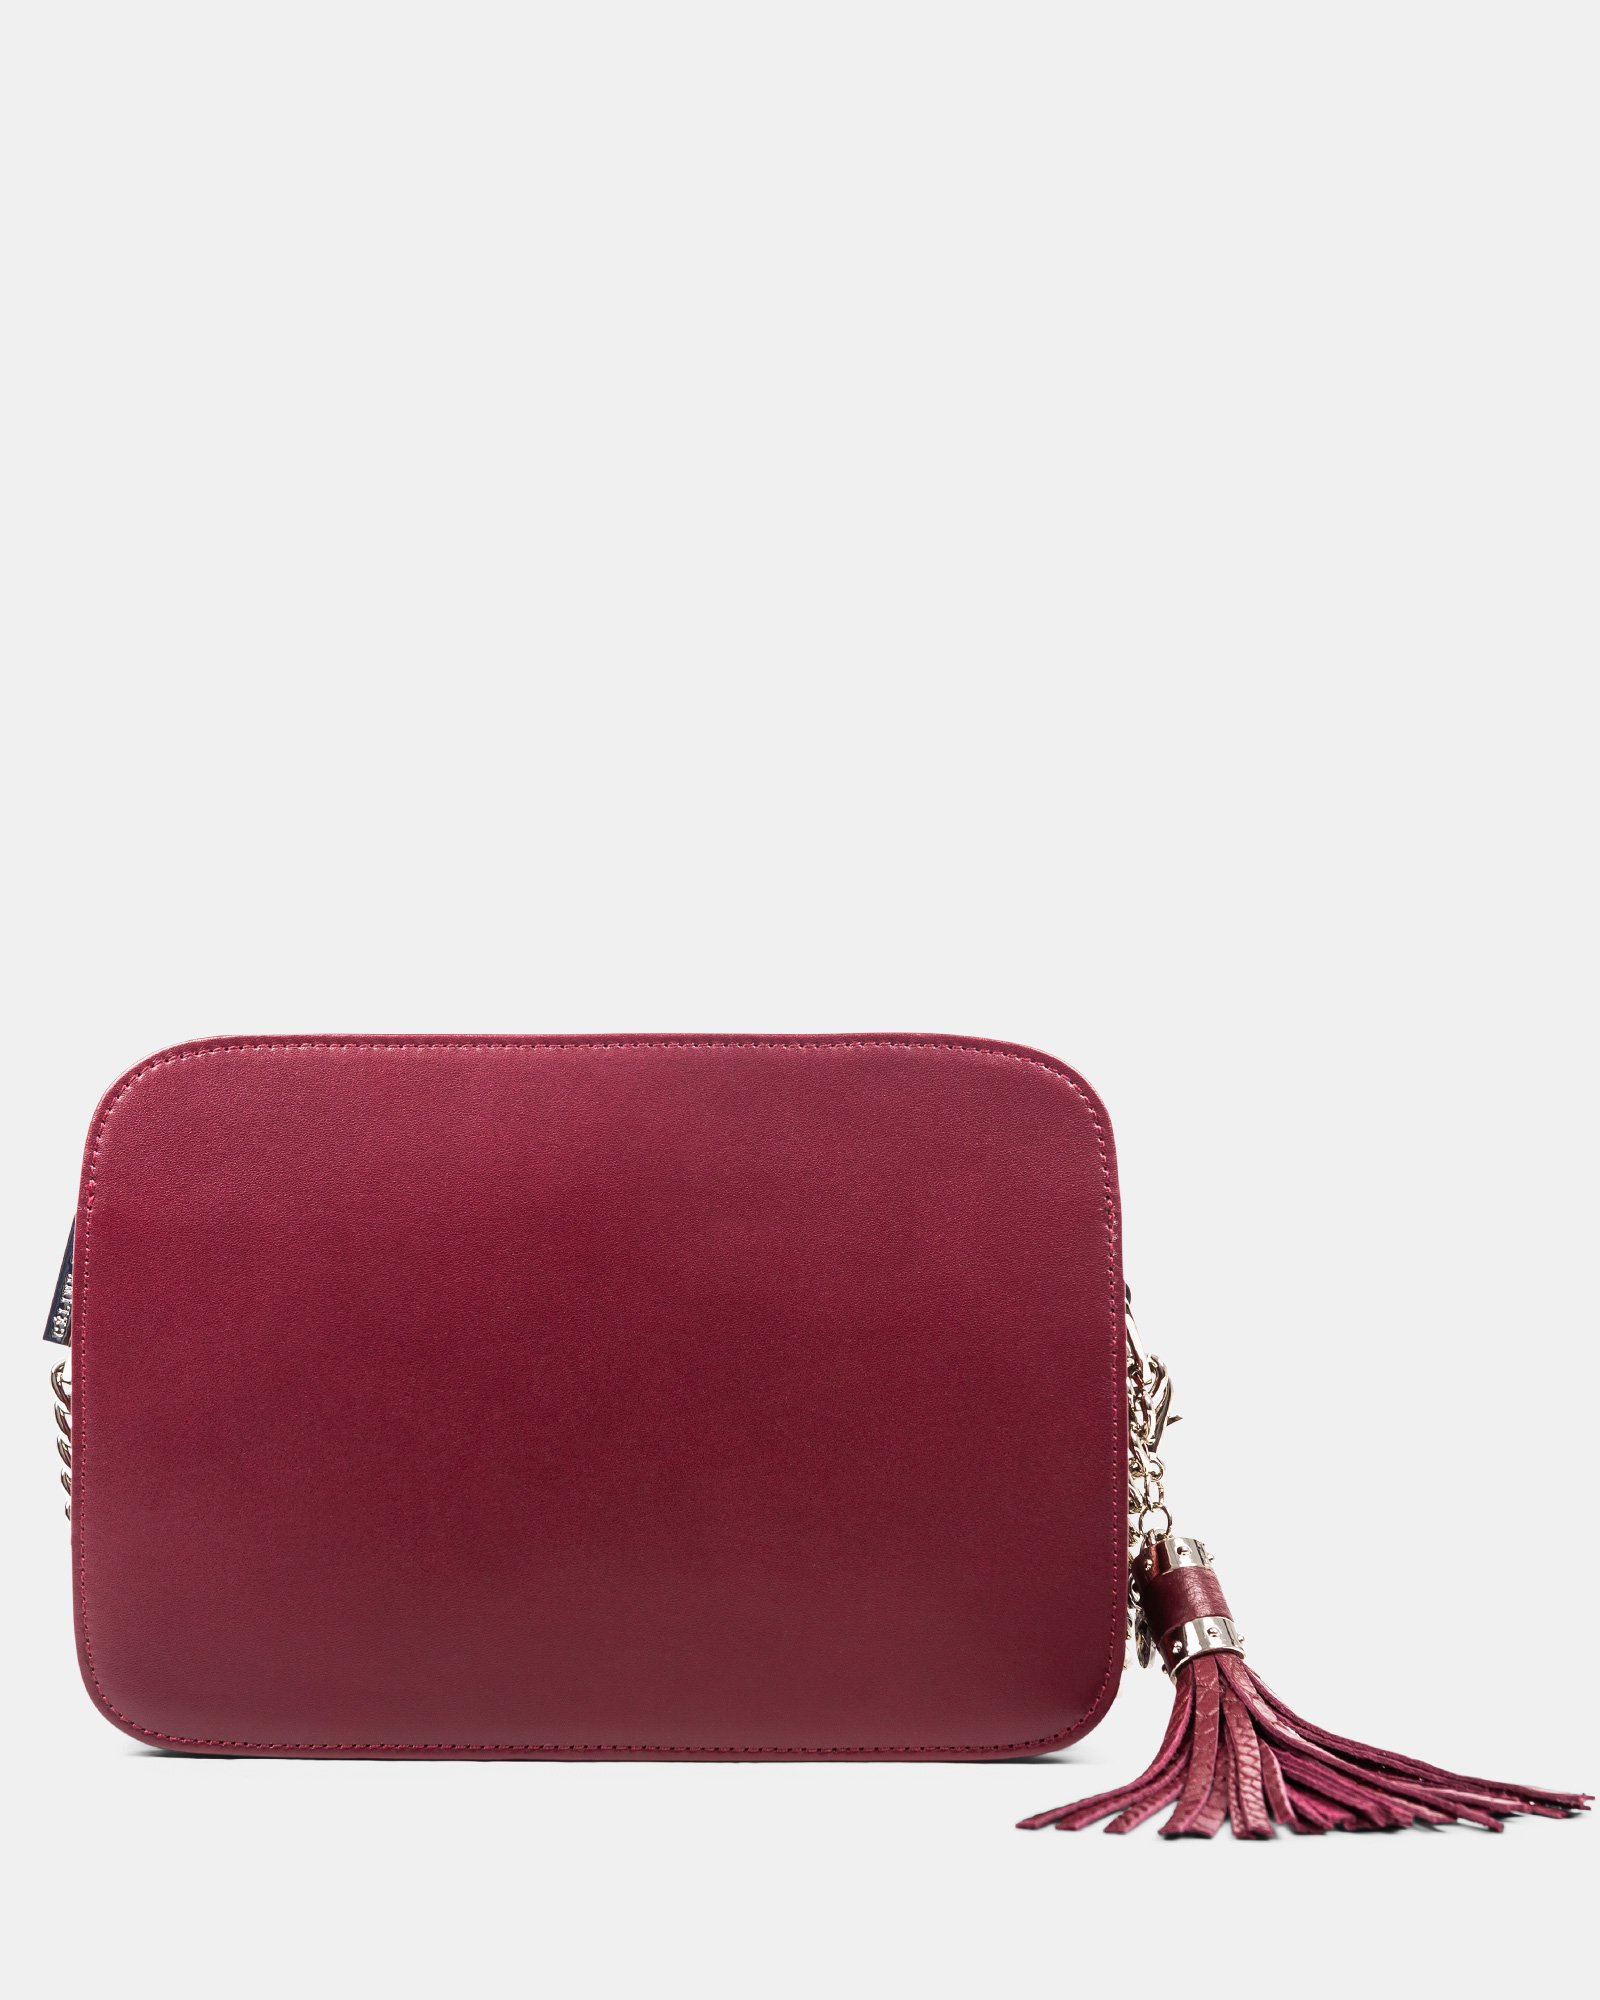 Elegy - Leather crossbody with Side pockets with magnetic closure - wine/red - Céline Dion - Zoom